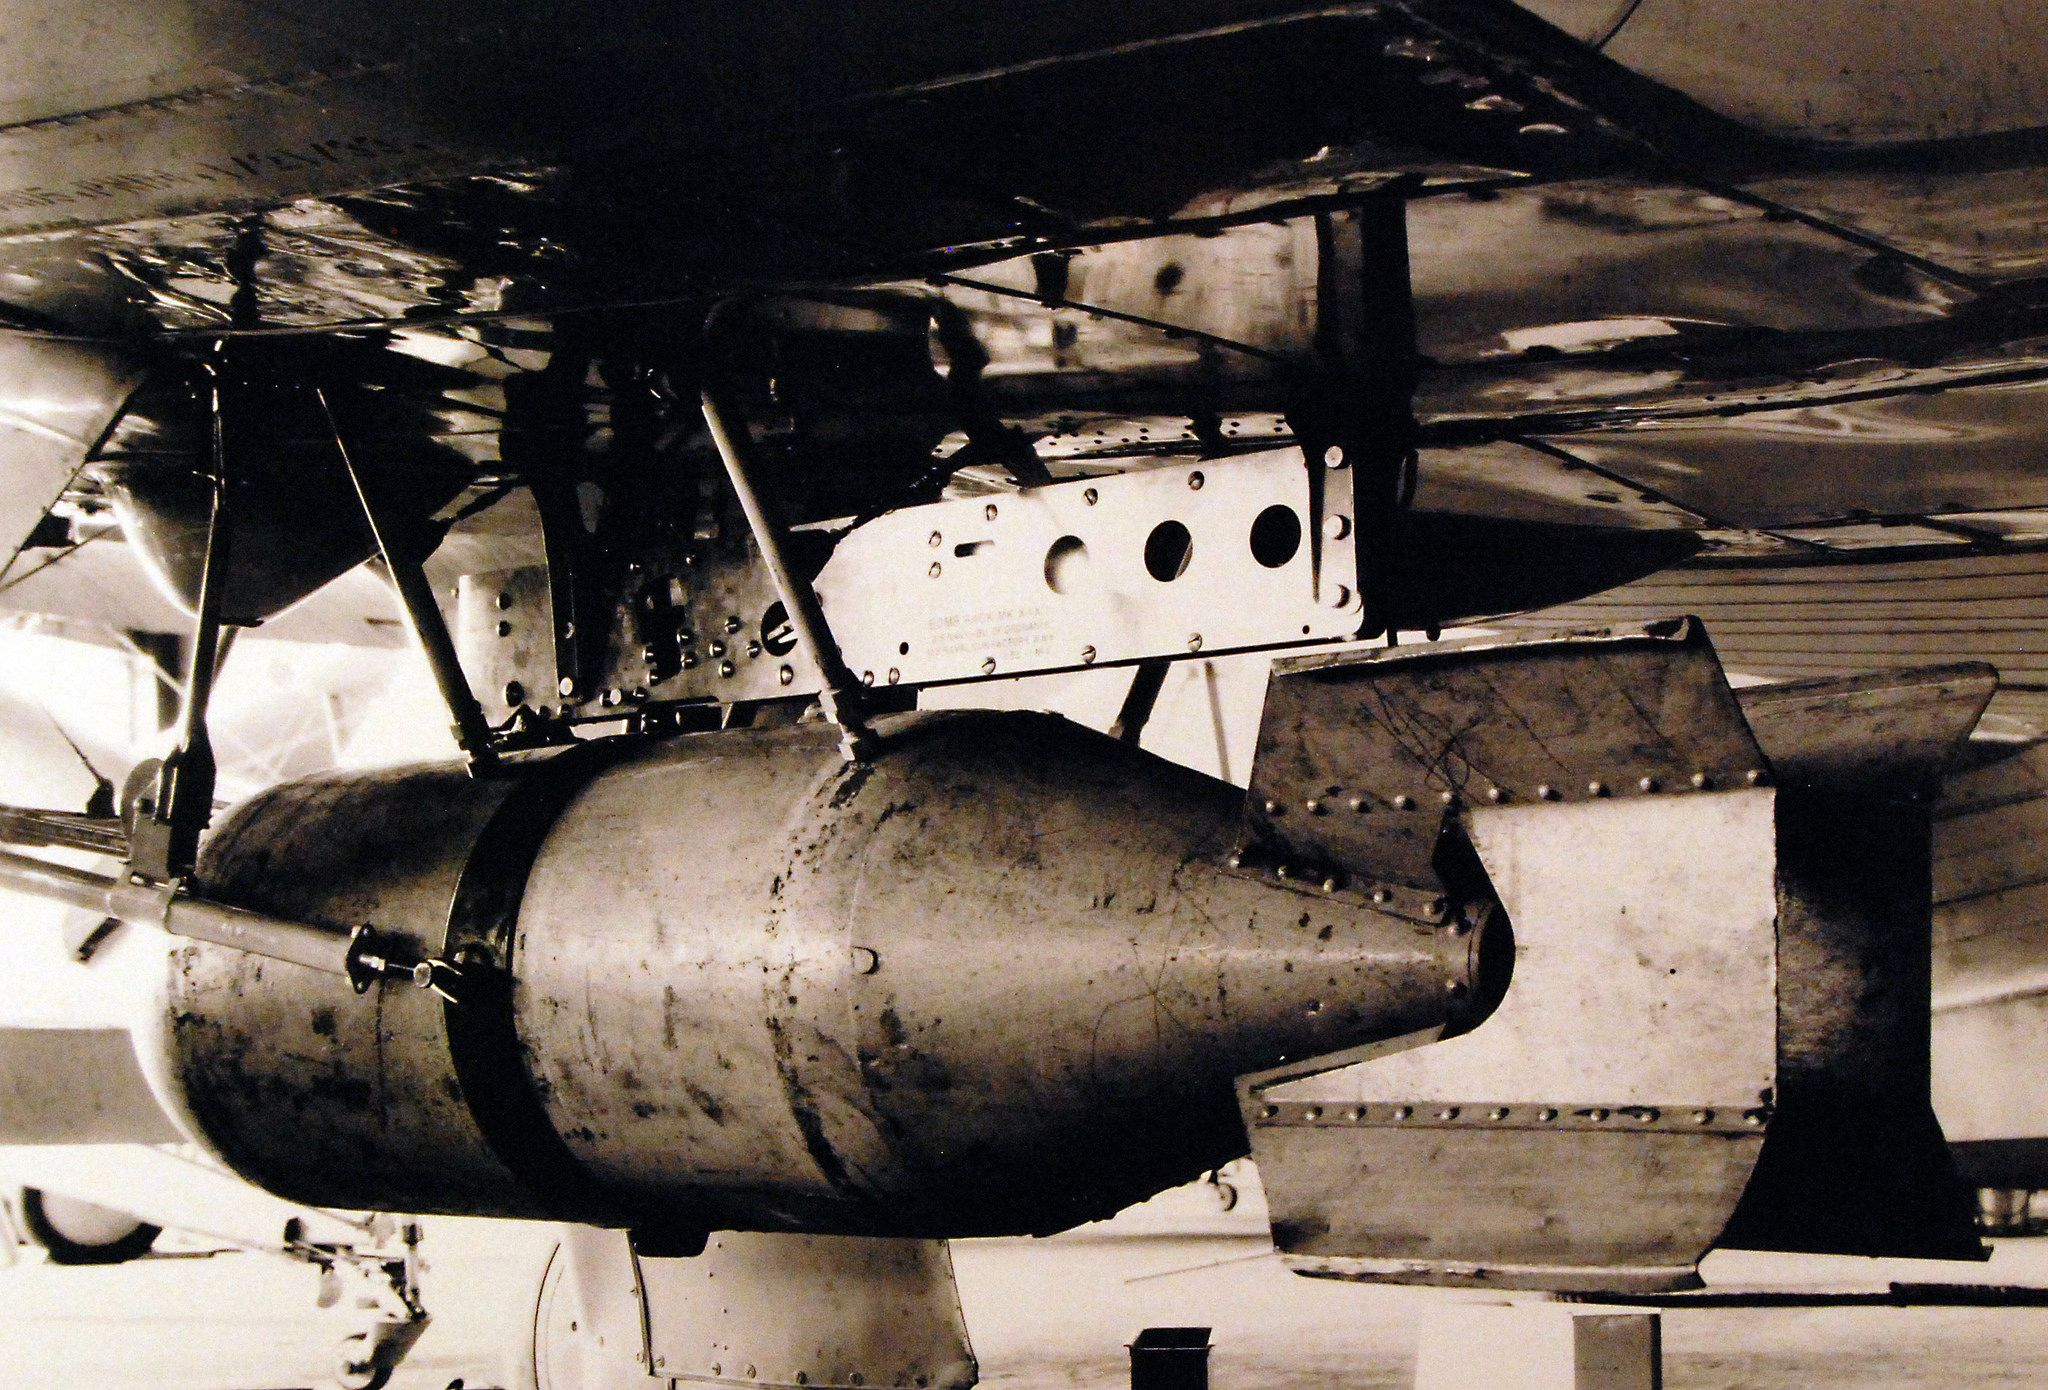 MK-III bomb rack on Boeing XF63-1 airplane, May 4, 1933.  U.S. Navy Photograph, now in the collections of the National Archives.